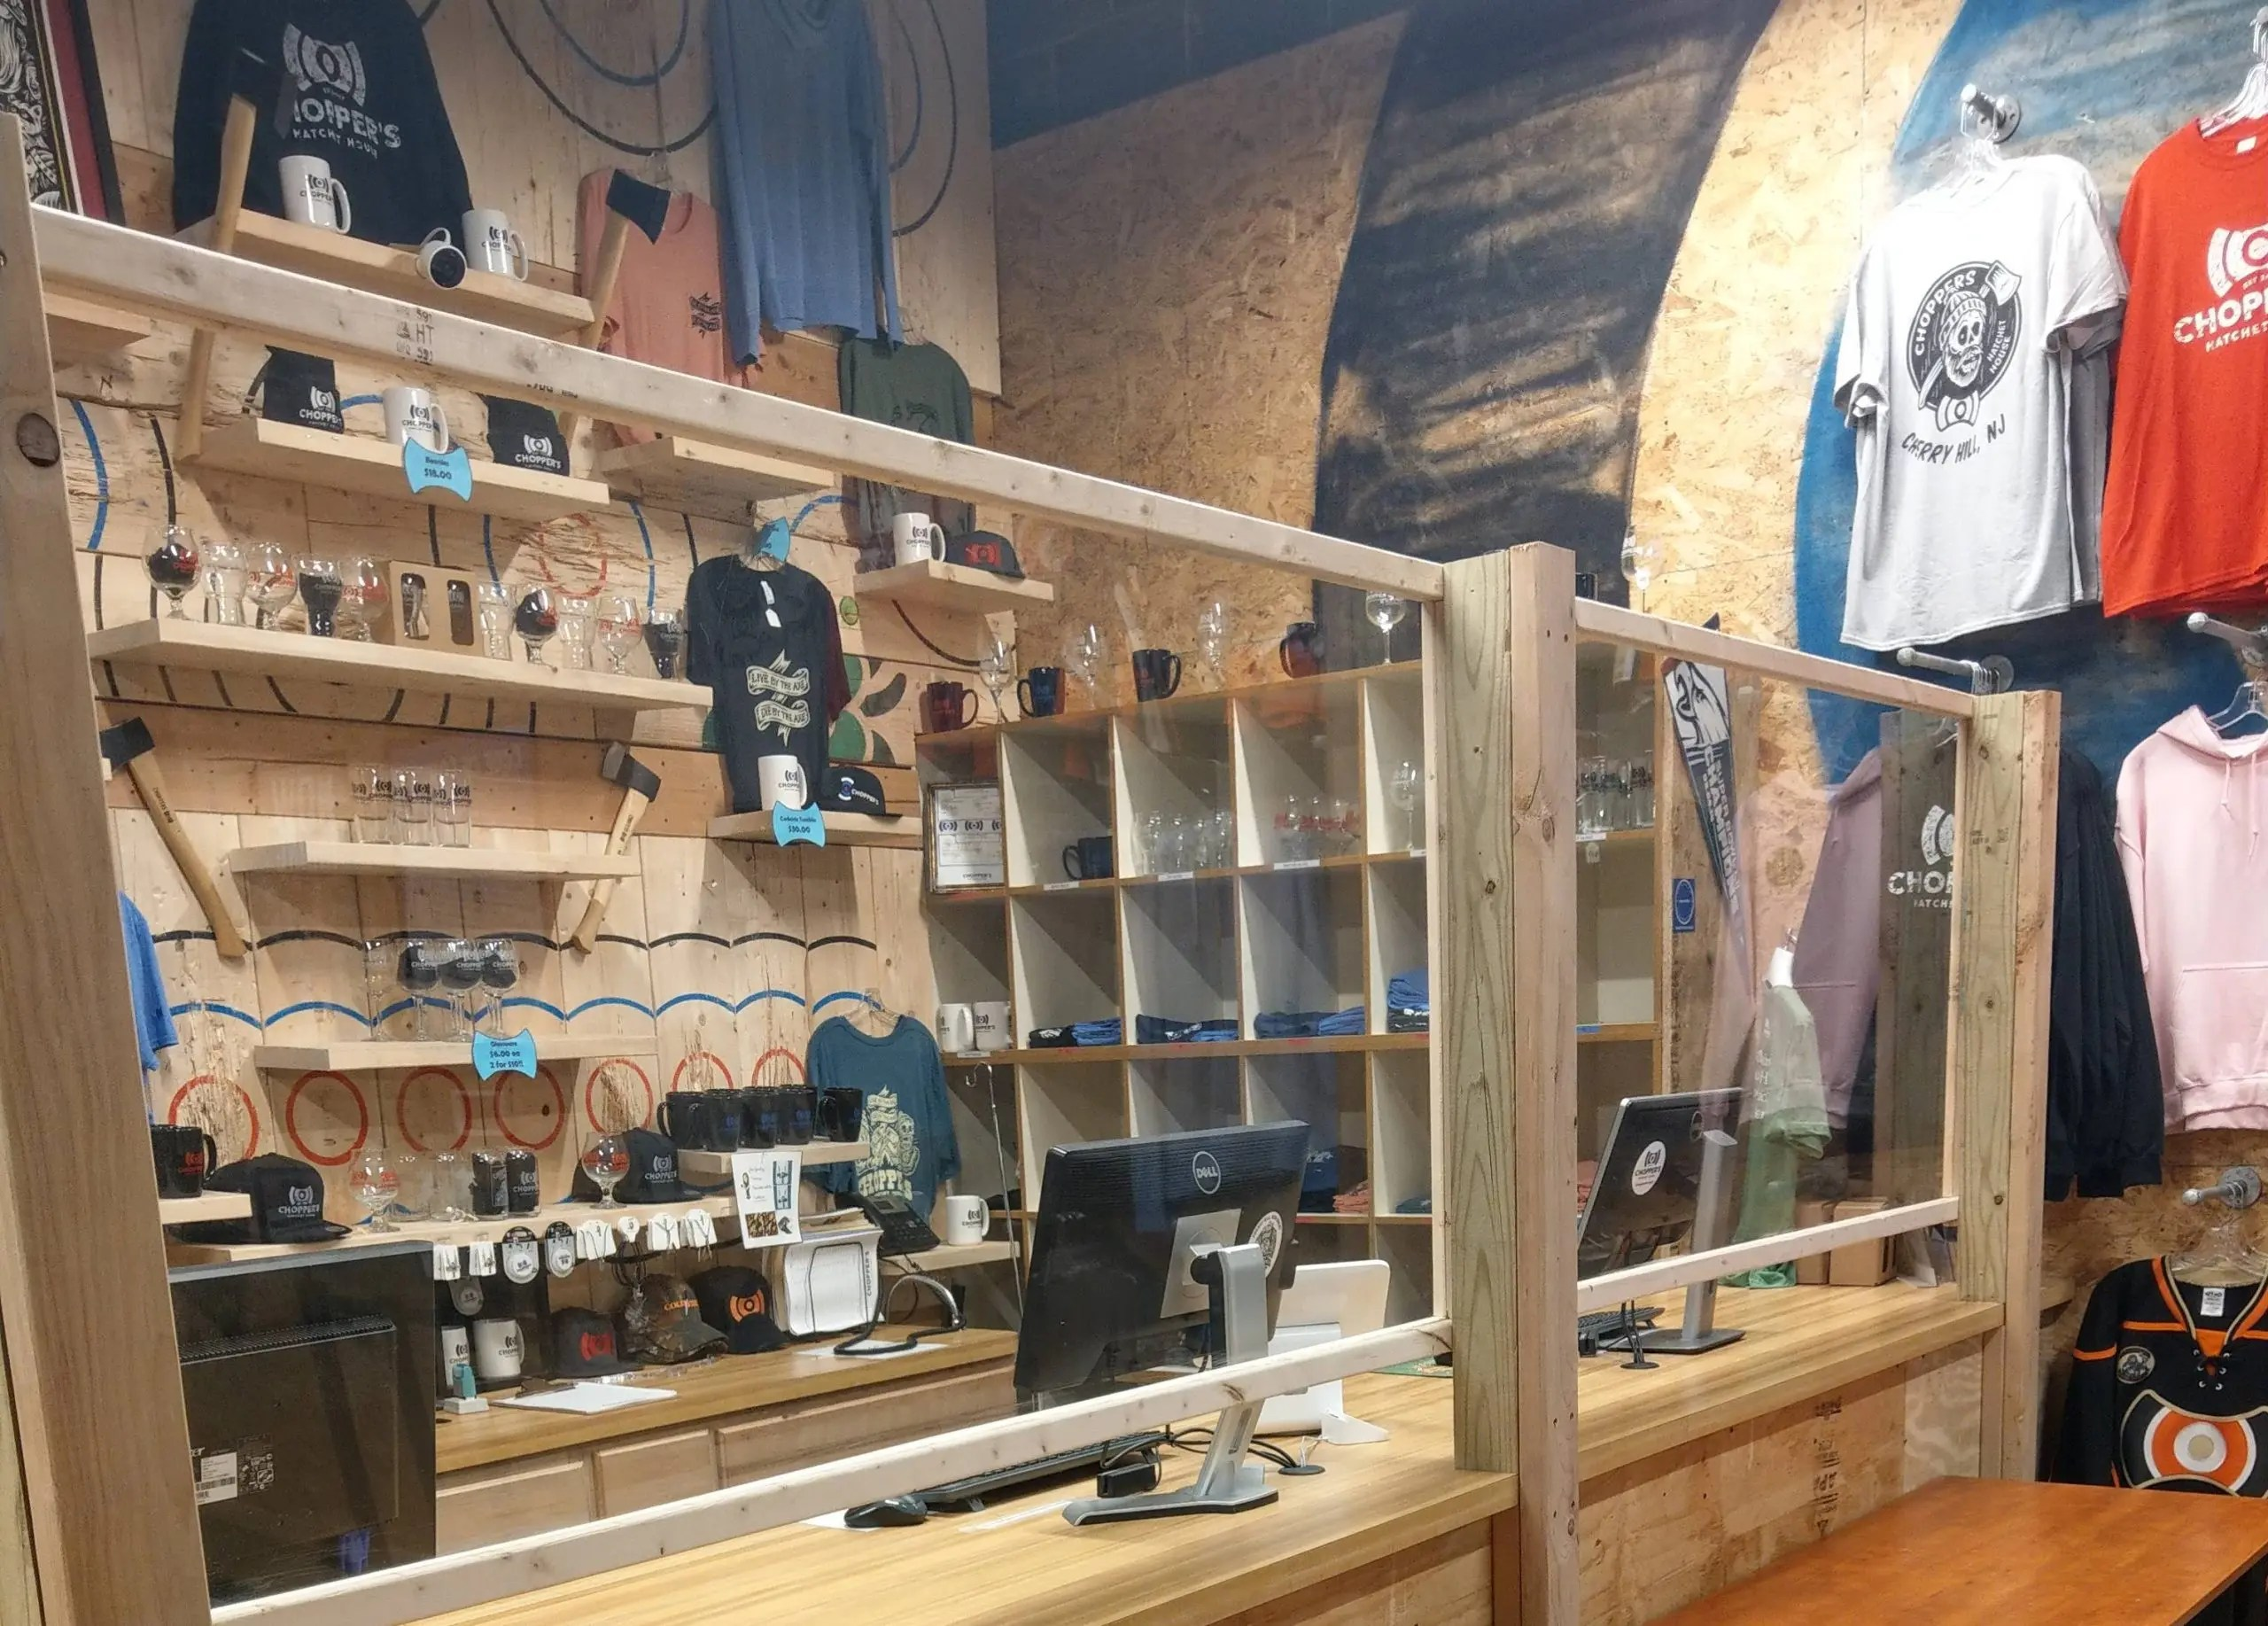 Choppers Re-Opening Plan for July 7th